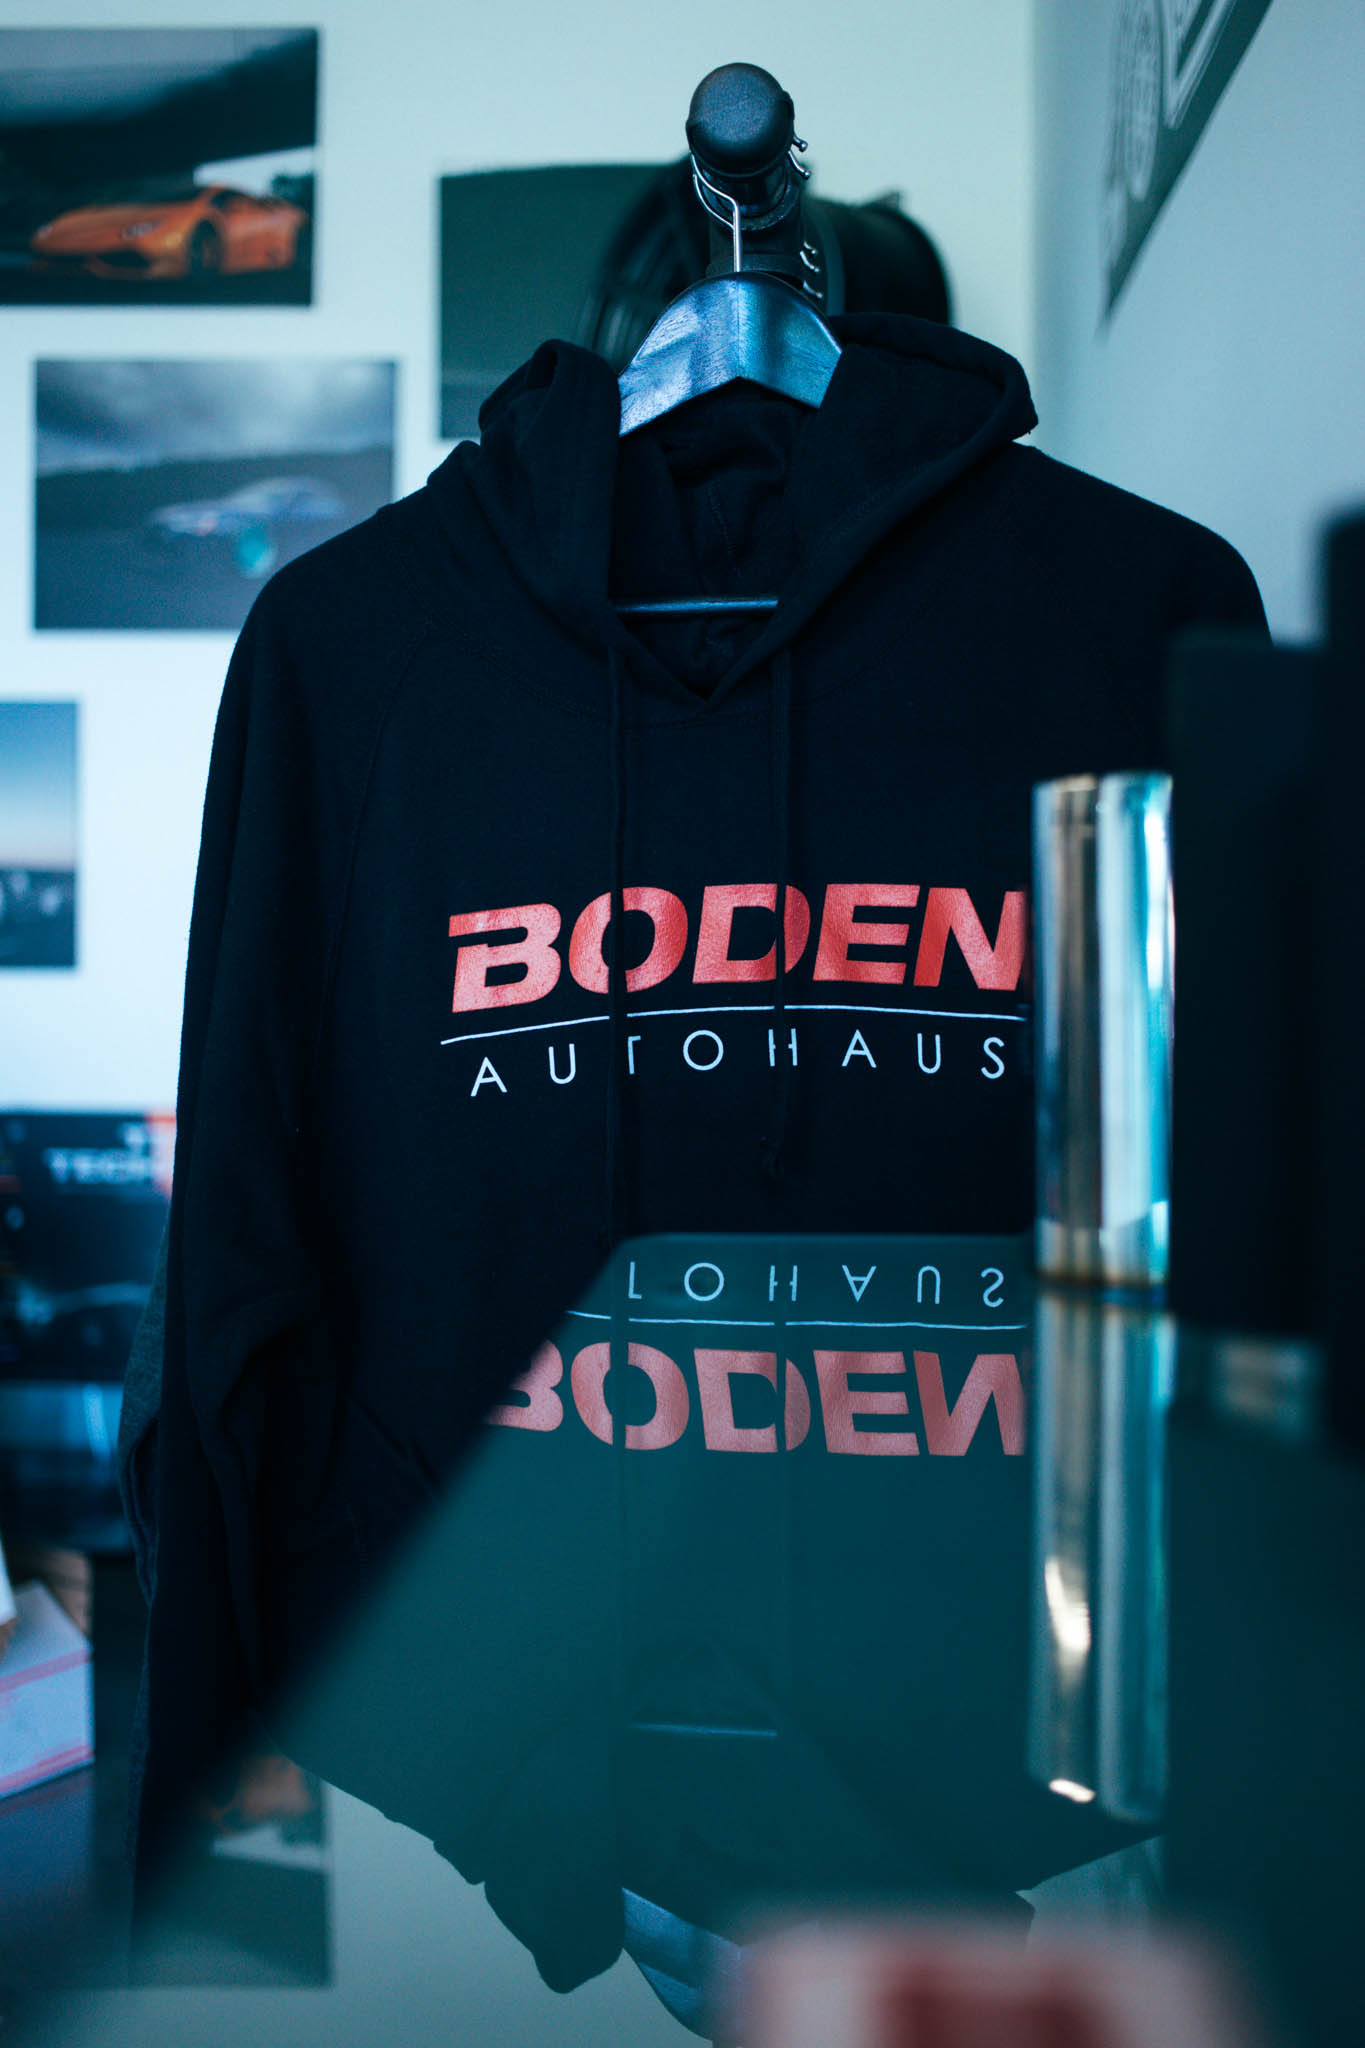 Boden 24 Boden Autohaus Shop Tour Stay Driven